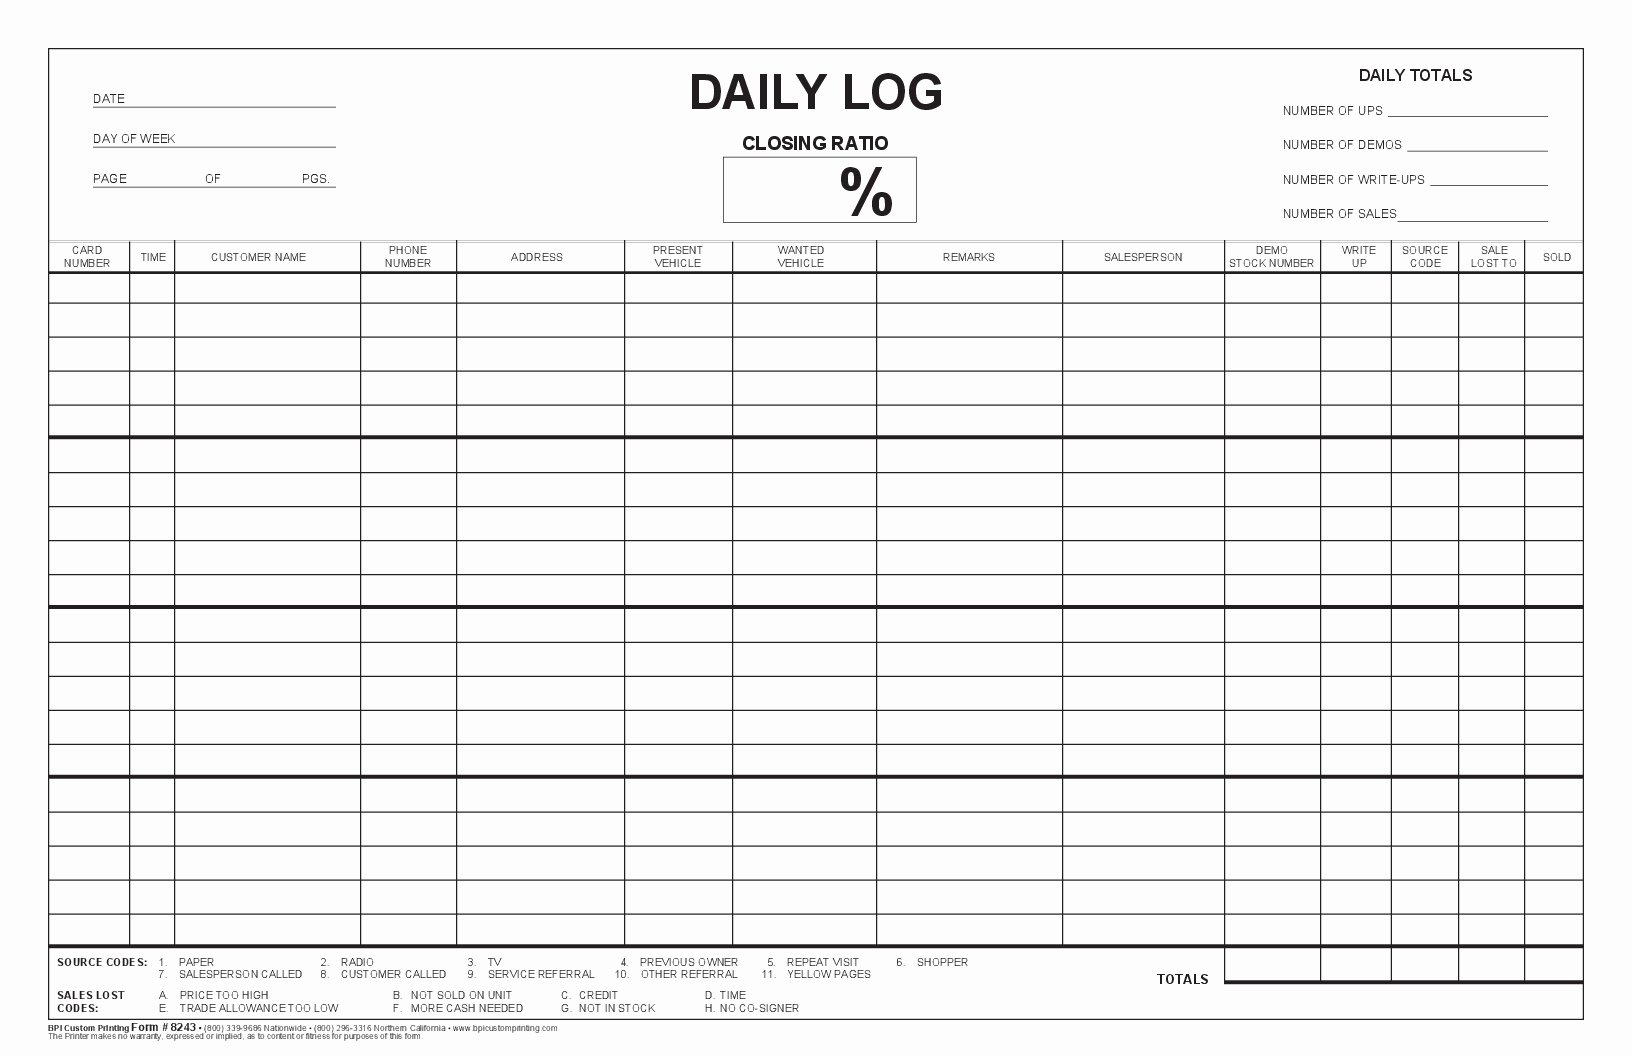 Daily Log Sheet Template Free Inspirational Closing Ratio Daily Log Bpi Dealer Supplies